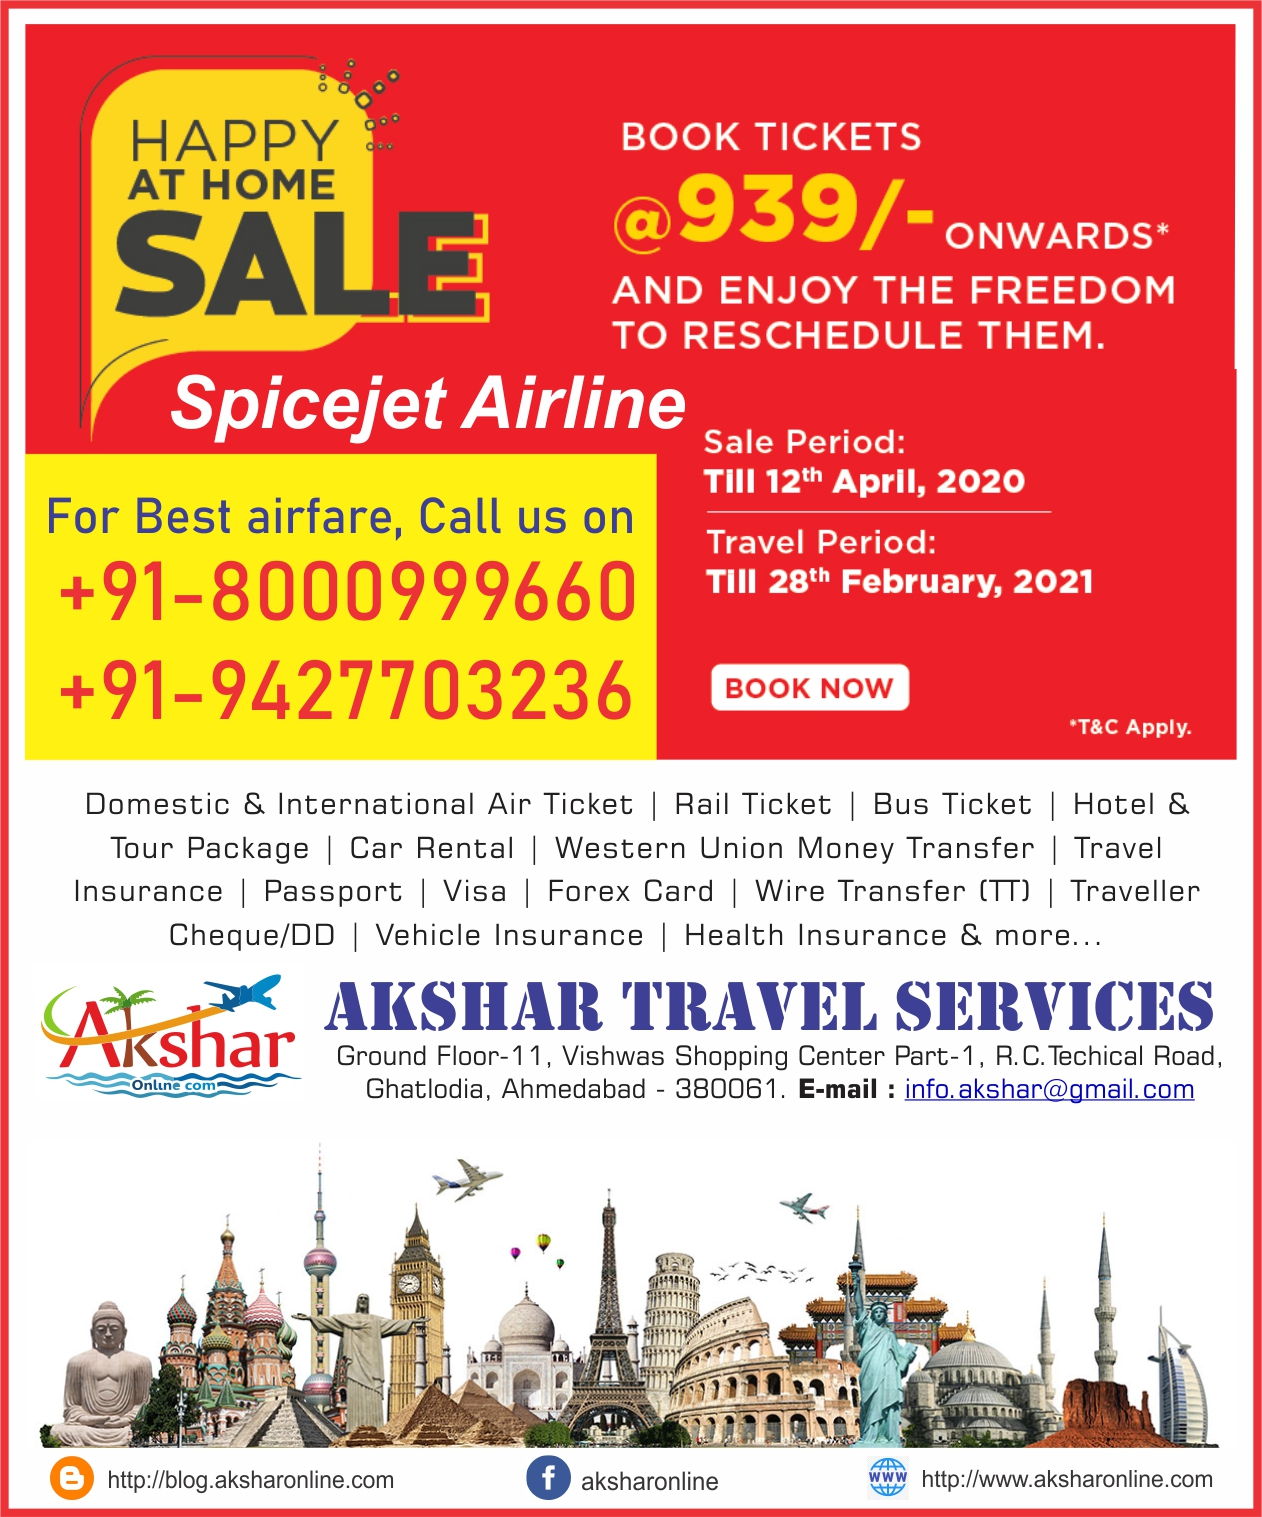 Spicejet Happy At Home SALE offer - Lowest Airfare Starting From Rs.939/- Onwards* Free Reschedule (Fare Difference Applicable). India travel, travel in India, cheap air tickets, cheap flights, flight, hotels, hotel, holidays, bus tickets, air travel, air tickets, holiday packages, travel packages, railways, trains, rail, aksharonline India, Travel Agent in India, Travel Agent in Gujarat, Travel Agent in Ahmedbad, Cheap Domestic and International Air Ticket Booking, Hotel Booking, Tour Packages, Western Union Money Transfer, Foreign Exchange, Travel Insurance, Car Rental, Utility Bill Payment, Bus Ticketing and More, Cheap Flight Ticket, Cheap Air Ticket, Air Ticket Agent in India, Air Ticket Agent in Ahmedabad, Air Ticket Agent in Gujarat, Air Ticket Agent in Ghatlodia, Flight Ticket Booking,Cheap Railway Ticket, Cheap Railway Ticket, Railway Ticket Agent in India, Railway Ticket Agent in Ahmedabad, Railway Ticket Agent in Gujarat, Railway Ticket Agent in Ghatlodia, Railway Ticket Booking,,Cheap Rail Ticket, Cheap Rail Ticket, Rail Ticket Agent in India, Rail Ticket Agent in Ahmedabad, Rail Ticket Agent in Gujarat, Rail Ticket Agent in Ghatlodia, Rail Ticket Booking,Cheap Bus Ticket, Cheap Bus Ticket, Bus Ticket Agent in India, Bus Ticket Agent in Ahmedabad, Bus Ticket Agent in Gujarat, Bus Ticket Agent in Ghatlodia, Bus Ticket Booking,Cheap Hotel Ticket, Cheap Hotel Ticket, Hotel Ticket Agent in India, Hotel Ticket Agent in Ahmedabad, Hotel Ticket Agent in Gujarat, Hotel Ticket Agent in Ghatlodia, Hotel Ticket Booking,Cheap Travel Insurance Ticket, Cheap Travel Insurance Ticket, Travel Insurance Ticket Agent in India, Travel Insurance Ticket Agent in Ahmedabad, Travel Insurance Ticket Agent in Gujarat, Travel Insurance Ticket Agent in Ghatlodia, Travel Insurance Ticket Booking,Cheap Car Rental Ticket, Cheap Car Rental Ticket, Car Rental Ticket Agent in India, Car Rental Ticket Agent in Ahmedabad, Car Rental Ticket Agent in Gujarat, Car Rental Ticket Agent in Ghatlodia, Car Rental Ticket Booking,Daily Service bus ticket booking, volvo bus ticket agent, volvo ticket agent in ahmedabad, volvo ticket, air ticket international, international air ticket agent, international flight ticket agent in ahmedabad, domestic air ticket booking, domestic and international air ticket booking agency, air ticket booking center, airline ticket booking center, 24hrs ticketing, air ticket india, air ticket international, sola ticket booking, ghatlodia ticket booking, ahmedabad ticket booking agent, railway ticket agent in ahmedabad, hotel booking in ahmedabad, flight ticket agent in ahmedabad, Flight booking, domestic flights, international flights,cheap air tickets, flight booking, air ticket booking, hotel booking, packages, buses, 5 star hotels, discount on hotels, Tour agent in ghatlodia, travel agent in ghatlodia, ghatlodia air travel agency, airline travel booking, flight booking, flight reservation, tour operator in ghatlodia, travel agent in ghatlodia, cheap flights, cheap tickets, expedia flights, seats availability, reservation, enquiry, pnr enquiry, cheap air tickets, flight booking, air ticket booking, hotel booking, indianrail, irctc, reservation irctc, luxury train in india, asia travel and hotels, indian travel agency, resorts, hotelairline tickets, holiday, travel ,hotels, hotel, flight booking, cheap flight tickets, package tours, discount air ticket, air ticket offers, air ticket offer, airticket, china airlines,air ticket,travel agency,cheap airline tickets,,cheap air tickets,cheap air,cheap airfare,cheap o air,cheap plane tickets,airplane ticket,travel sites,airline flights, travel websites,travel deals,places to visit,beach holidays,travel packages,best flight deals,travel agencies,best at travel,places to go,disney vacation planner,tour agency,travel consultant,local travel agents,rail europe travel agents,rail travel agent,international travel agency,corporate travel agent,honeymoon travel agent, become airline ticket agent, airline ticket agent calgary, airline ticket agent in ahmedabad, airline ticket agent in ghatlodia, travel agency near me, travel agency in ahmedabad, travel agency in bapunagar, travel agency in dariyapur, travel agency in shahpur, travel agency in khanpur, travel agency in mirzapur, travel agency in shahibaug, travel agency in kali, travel agency in chandola lake, travel agency in bodakdev, travel agency in maninagar, travel agency in vastrapur, travel agency in nava vadaj, travel agency in Ambawadi, travel agency in Ellis Bridge, travel agency in navrangpura, travel agency in ghatlodiya, travel agency in naroda, travel agency in jodhpur, travel agency in paldi, travel agency in bopal, travel agency in ranip, travel agency in gota, travel agency in sarkhej, travel agency in vasana, travel agency in vejalpur, travel agency in gomtipur, travel agency in C G Road, travel agency in lawgarden, travel agency in laldarwaja, travel agency in prahladnagar, travel agency in satellite, travel agency in jivrajpark, travel agency in narol, travel agency in vatwa, travel agency in  ghodasar, travel agency in gurukul, travel agency in  isanpur, travel agency in chandkheda, travel agency in vastral, travel agency in juhapura, travel agency in thaltej, travel agency in chandlodiya, travel agency in krishnanagar, travel agency in shilaj, travel agency in vastral, travel agency in meghani nagar, travel agency in ashtodia, travel agency in gandhinagar, travel agency in kalol, travel agency in bhavnagar, travel agency in mehsana, travel agency in palanpur, travel agency in banaskantha, Rail Ticket Booking Agent near me, Rail Ticket Booking Agent in ahmedabad, Rail Ticket Booking Agent in bapunagar, Rail Ticket Booking Agent in dariyapur, Rail Ticket Booking Agent in shahpur, Rail Ticket Booking Agent in khanpur, Rail Ticket Booking Agent in mirzapur, Rail Ticket Booking Agent in shahibaug, Rail Ticket Booking Agent in kali, Rail Ticket Booking Agent in chandola lake, Rail Ticket Booking Agent in bodakdev, Rail Ticket Booking Agent in maninagar, Rail Ticket Booking Agent in vastrapur, Rail Ticket Booking Agent in nava vadaj, Rail Ticket Booking Agent in Ambawadi, Rail Ticket Booking Agent in Ellis Bridge, Rail Ticket Booking Agent in navrangpura, Rail Ticket Booking Agent in ghatlodiya, Rail Ticket Booking Agent in naroda, Rail Ticket Booking Agent in jodhpur, Rail Ticket Booking Agent in paldi, Rail Ticket Booking Agent in bopal, Rail Ticket Booking Agent in ranip, Rail Ticket Booking Agent in gota, Rail Ticket Booking Agent in sarkhej, Rail Ticket Booking Agent in vasana, Rail Ticket Booking Agent in vejalpur, Rail Ticket Booking Agent in gomtipur, Rail Ticket Booking Agent in C G Road, Rail Ticket Booking Agent in lawgarden, Rail Ticket Booking Agent in laldarwaja, Rail Ticket Booking Agent in prahladnagar, Rail Ticket Booking Agent in satellite, Rail Ticket Booking Agent in jivrajpark, Rail Ticket Booking Agent in narol, Rail Ticket Booking Agent in vatwa, Rail Ticket Booking Agent in  ghodasar, Rail Ticket Booking Agent in gurukul, Rail Ticket Booking Agent in  isanpur, Rail Ticket Booking Agent in chandkheda, Rail Ticket Booking Agent in vastral, Rail Ticket Booking Agent in juhapura, Rail Ticket Booking Agent in thaltej, Rail Ticket Booking Agent in chandlodiya, Rail Ticket Booking Agent in krishnanagar, Rail Ticket Booking Agent in shilaj, Rail Ticket Booking Agent in vastral, Rail Ticket Booking Agent in meghani nagar, Rail Ticket Booking Agent in ashtodia, Rail Ticket Booking Agent in gandhinagar, Rail Ticket Booking Agent in kalol, Rail Ticket Booking Agent in bhavnagar, Rail Ticket Booking Agent in mehsana, Rail Ticket Booking Agent in palanpur, Rail Ticket Booking Agent in banaskantha, Air Ticket Booking Agent near me, Air Ticket Booking Agent in ahmedabad, Air Ticket Booking Agent in bapunagar, Air Ticket Booking Agent in dariyapur, Air Ticket Booking Agent in shahpur, Air Ticket Booking Agent in khanpur, Air Ticket Booking Agent in mirzapur, Air Ticket Booking Agent in shahibaug, Air Ticket Booking Agent in kali, Air Ticket Booking Agent in chandola lake, Air Ticket Booking Agent in bodakdev, Air Ticket Booking Agent in maninagar, Air Ticket Booking Agent in vastrapur, Air Ticket Booking Agent in nava vadaj, Air Ticket Booking Agent in Ambawadi, Air Ticket Booking Agent in Ellis Bridge, Air Ticket Booking Agent in navrangpura, Air Ticket Booking Agent in ghatlodiya, Air Ticket Booking Agent in naroda, Air Ticket Booking Agent in jodhpur, Air Ticket Booking Agent in paldi, Air Ticket Booking Agent in bopal, Air Ticket Booking Agent in ranip, Air Ticket Booking Agent in gota, Air Ticket Booking Agent in sarkhej, Air Ticket Booking Agent in vasana, Air Ticket Booking Agent in vejalpur, Air Ticket Booking Agent in gomtipur, Air Ticket Booking Agent in C G Road, Air Ticket Booking Agent in lawgarden, Air Ticket Booking Agent in laldarwaja, Air Ticket Booking Agent in prahladnagar, Air Ticket Booking Agent in satellite, Air Ticket Booking Agent in jivrajpark, Air Ticket Booking Agent in narol, Air Ticket Booking Agent in vatwa, Air Ticket Booking Agent in  ghodasar, Air Ticket Booking Agent in gurukul, Air Ticket Booking Agent in  isanpur, Air Ticket Booking Agent in chandkheda, Air Ticket Booking Agent in vastral, Air Ticket Booking Agent in juhapura, Air Ticket Booking Agent in thaltej, Air Ticket Booking Agent in chandlodiya, Air Ticket Booking Agent in krishnanagar, Air Ticket Booking Agent in shilaj, Air Ticket Booking Agent in vastral, Air Ticket Booking Agent in meghani nagar, Air Ticket Booking Agent in ashtodia, Air Ticket Booking Agent in gandhinagar, Air Ticket Booking Agent in kalol, Air Ticket Booking Agent in bhavnagar, Air Ticket Booking Agent in mehsana, Air Ticket Booking Agent in palanpur, Air Ticket Booking Agent in banaskantha, Bus Ticket Booking near me, Bus Ticket Booking in ahmedabad, Bus Ticket Booking in bapunagar, Bus Ticket Booking in dariyapur, Bus Ticket Booking in shahpur, Bus Ticket Booking in khanpur, Bus Ticket Booking in mirzapur, Bus Ticket Booking in shahibaug, Bus Ticket Booking in kali, Bus Ticket Booking in chandola lake, Bus Ticket Booking in bodakdev, Bus Ticket Booking in maninagar, Bus Ticket Booking in vastrapur, Bus Ticket Booking in nava vadaj, Bus Ticket Booking in Ambawadi, Bus Ticket Booking in Ellis Bridge, Bus Ticket Booking in navrangpura, Bus Ticket Booking in ghatlodiya, Bus Ticket Booking in naroda, Bus Ticket Booking in jodhpur, Bus Ticket Booking in paldi, Bus Ticket Booking in bopal, Bus Ticket Booking in ranip, Bus Ticket Booking in gota, Bus Ticket Booking in sarkhej, Bus Ticket Booking in vasana, Bus Ticket Booking in vejalpur, Bus Ticket Booking in gomtipur, Bus Ticket Booking in C G Road, Bus Ticket Booking in lawgarden, Bus Ticket Booking in laldarwaja, Bus Ticket Booking in prahladnagar, Bus Ticket Booking in satellite, Bus Ticket Booking in jivrajpark, Bus Ticket Booking in narol, Bus Ticket Booking in vatwa, Bus Ticket Booking in  ghodasar, Bus Ticket Booking in gurukul, Bus Ticket Booking in  isanpur, Bus Ticket Booking in chandkheda, Bus Ticket Booking in vastral, Bus Ticket Booking in juhapura, Bus Ticket Booking in thaltej, Bus Ticket Booking in chandlodiya, Bus Ticket Booking in krishnanagar, Bus Ticket Booking in shilaj, Bus Ticket Booking in vastral, Bus Ticket Booking in meghani nagar, Bus Ticket Booking in ashtodia, Bus Ticket Booking in gandhinagar, Bus Ticket Booking in kalol, Bus Ticket Booking in bhavnagar, Bus Ticket Booking in mehsana, Bus Ticket Booking in palanpur, Bus Ticket Booking in banaskantha, Hotel Tour Package Booking Agent near me, Hotel Tour Package Booking Agent in ahmedabad, Hotel Tour Package Booking Agent in bapunagar, Hotel Tour Package Booking Agent in dariyapur, Hotel Tour Package Booking Agent in shahpur, Hotel Tour Package Booking Agent in khanpur, Hotel Tour Package Booking Agent in mirzapur, Hotel Tour Package Booking Agent in shahibaug, Hotel Tour Package Booking Agent in kali, Hotel Tour Package Booking Agent in chandola lake, Hotel Tour Package Booking Agent in bodakdev, Hotel Tour Package Booking Agent in maninagar, Hotel Tour Package Booking Agent in vastrapur, Hotel Tour Package Booking Agent in nava vadaj, Hotel Tour Package Booking Agent in Ambawadi, Hotel Tour Package Booking Agent in Ellis Bridge, Hotel Tour Package Booking Agent in navrangpura, Hotel Tour Package Booking Agent in ghatlodiya, Hotel Tour Package Booking Agent in naroda, Hotel Tour Package Booking Agent in jodhpur, Hotel Tour Package Booking Agent in paldi, Hotel Tour Package Booking Agent in bopal, Hotel Tour Package Booking Agent in ranip, Hotel Tour Package Booking Agent in gota, Hotel Tour Package Booking Agent in sarkhej, Hotel Tour Package Booking Agent in vasana, Hotel Tour Package Booking Agent in vejalpur, Hotel Tour Package Booking Agent in gomtipur, Hotel Tour Package Booking Agent in C G Road, Hotel Tour Package Booking Agent in lawgarden, Hotel Tour Package Booking Agent in laldarwaja, Hotel Tour Package Booking Agent in prahladnagar, Hotel Tour Package Booking Agent in satellite, Hotel Tour Package Booking Agent in jivrajpark, Hotel Tour Package Booking Agent in narol, Hotel Tour Package Booking Agent in vatwa, Hotel Tour Package Booking Agent in  ghodasar, Hotel Tour Package Booking Agent in gurukul, Hotel Tour Package Booking Agent in  isanpur, Hotel Tour Package Booking Agent in chandkheda, Hotel Tour Package Booking Agent in vastral, Hotel Tour Package Booking Agent in juhapura, Hotel Tour Package Booking Agent in thaltej, Hotel Tour Package Booking Agent in chandlodiya, Hotel Tour Package Booking Agent in krishnanagar, Hotel Tour Package Booking Agent in shilaj, Hotel Tour Package Booking Agent in vastral, Hotel Tour Package Booking Agent in meghani nagar, Hotel Tour Package Booking Agent in ashtodia, Hotel Tour Package Booking Agent in gandhinagar, Hotel Tour Package Booking Agent in kalol, Hotel Tour Package Booking Agent in bhavnagar, Hotel Tour Package Booking Agent in mehsana, Hotel Tour Package Booking Agent in palanpur, Hotel Tour Package Booking Agent in banaskantha,